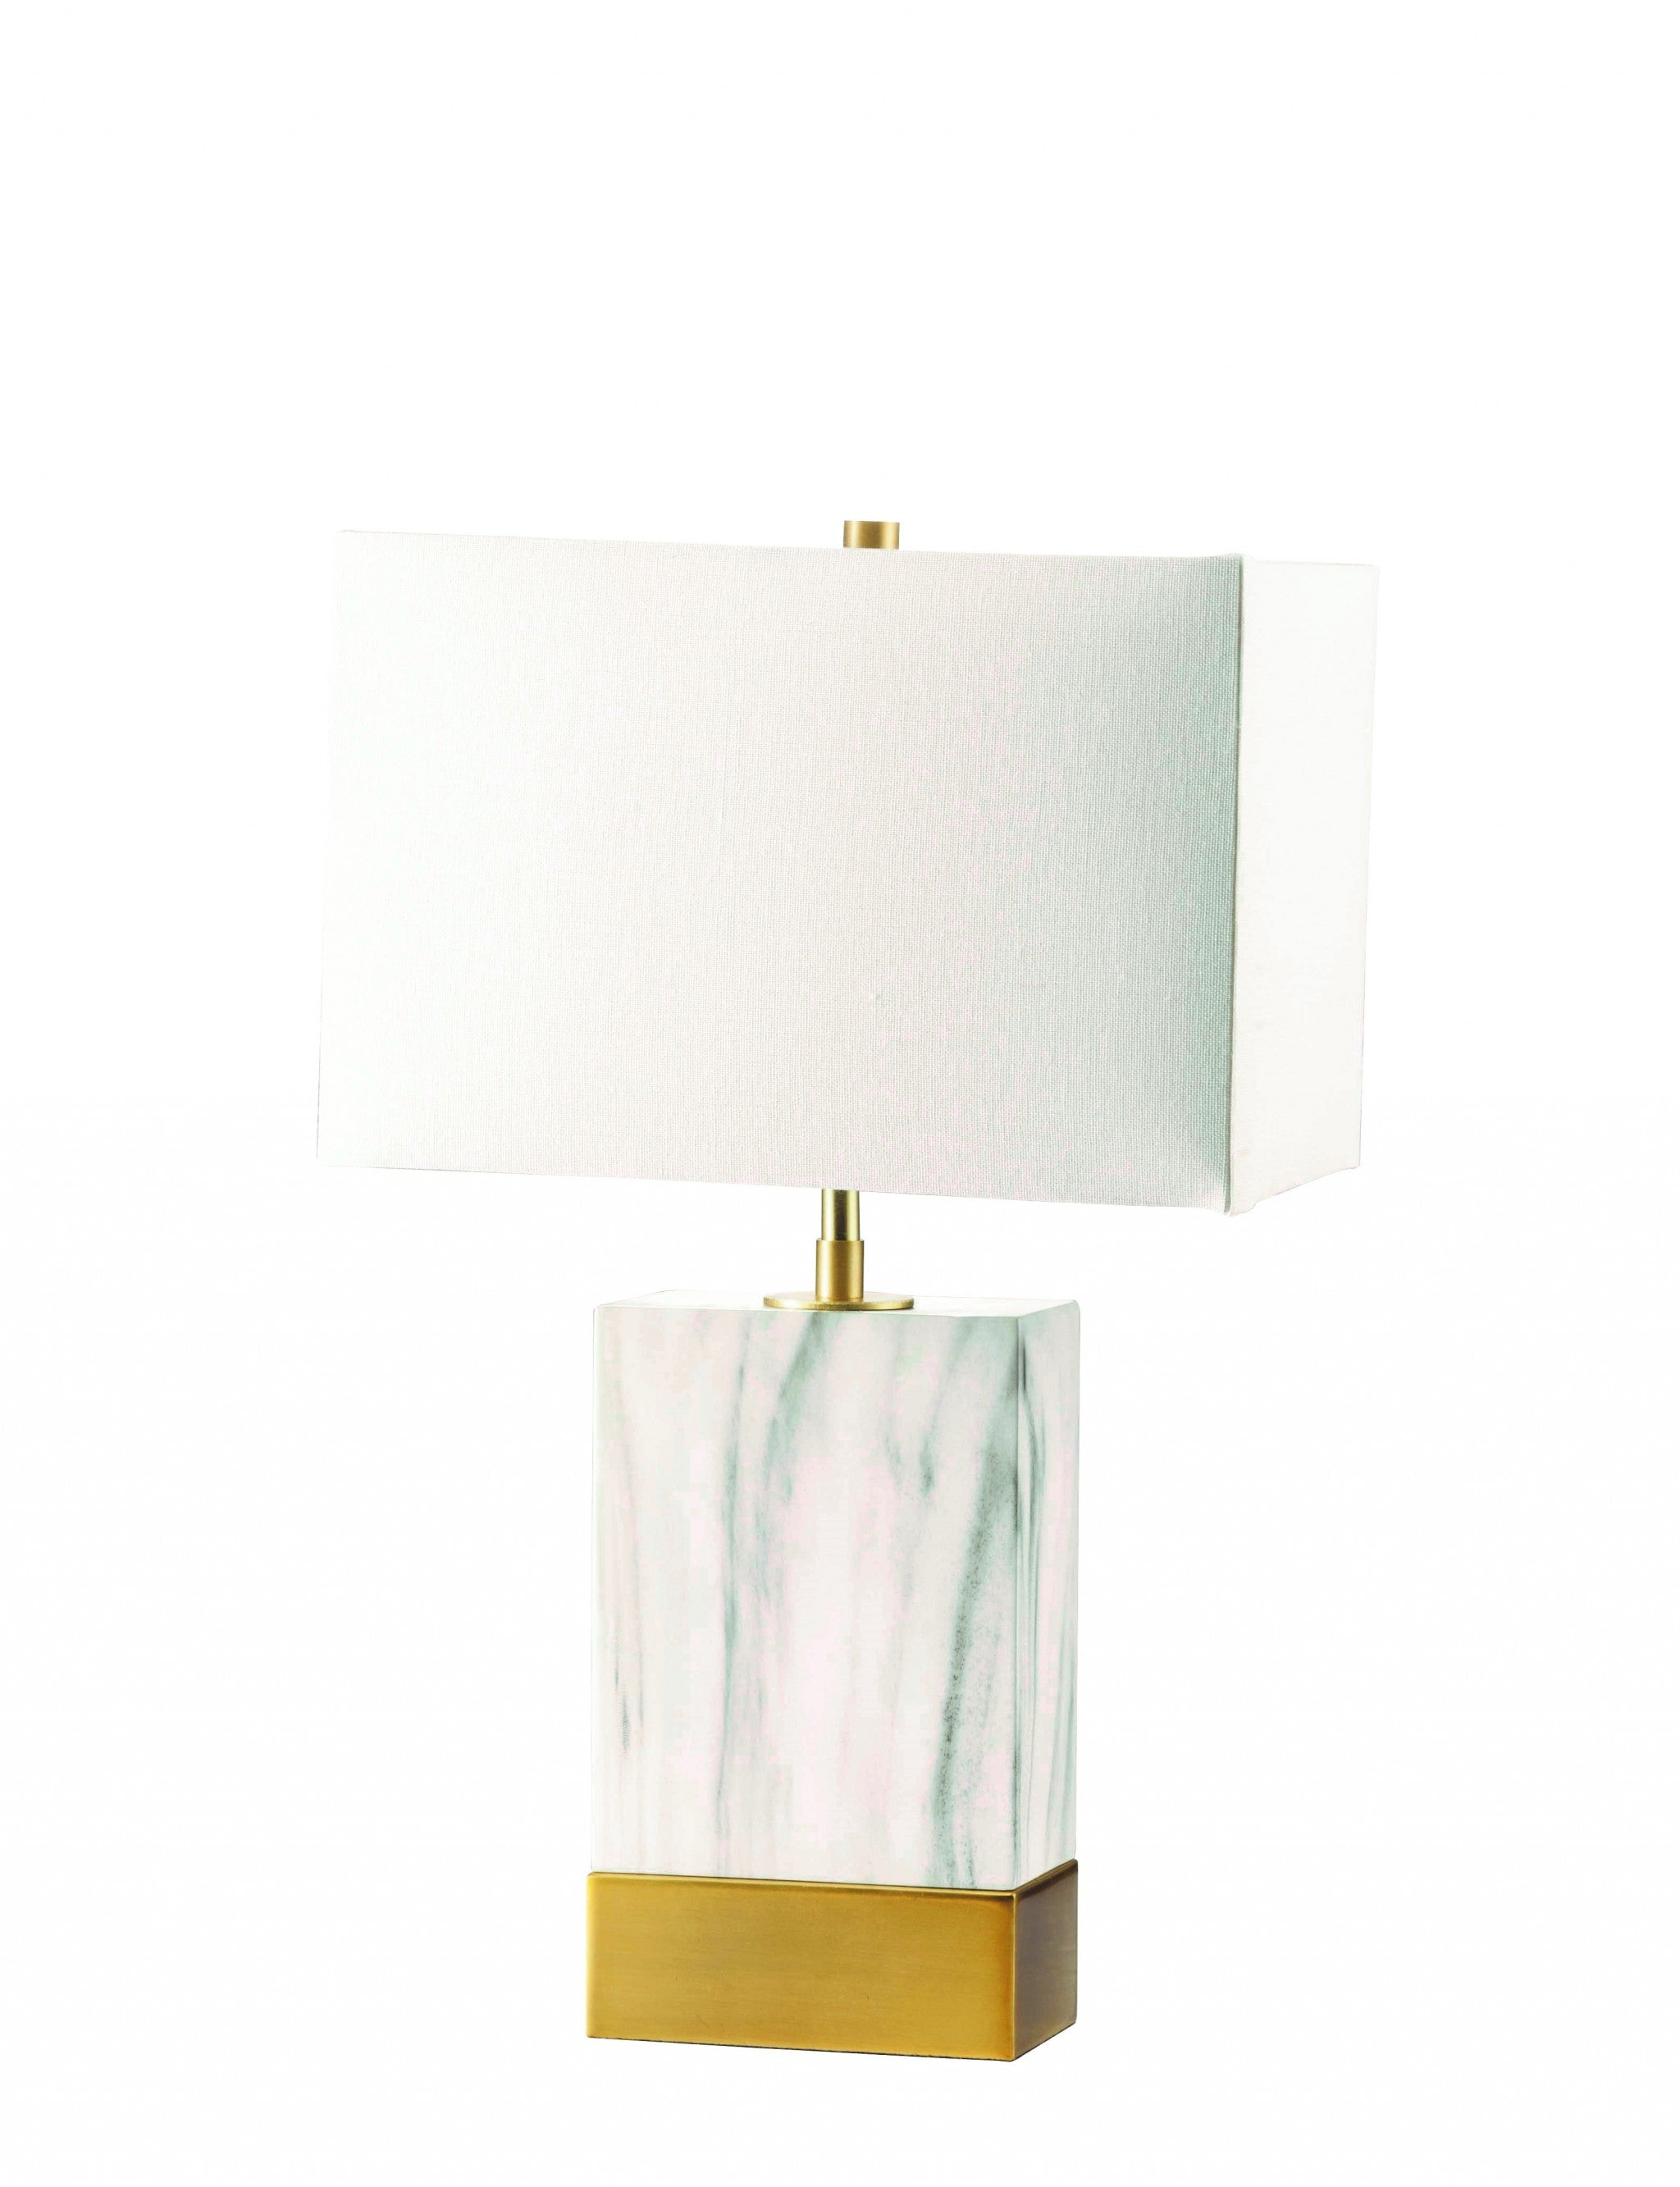 "8"" X 13"" X 25"" White Satin Gold Metal Shade Table Lamp"